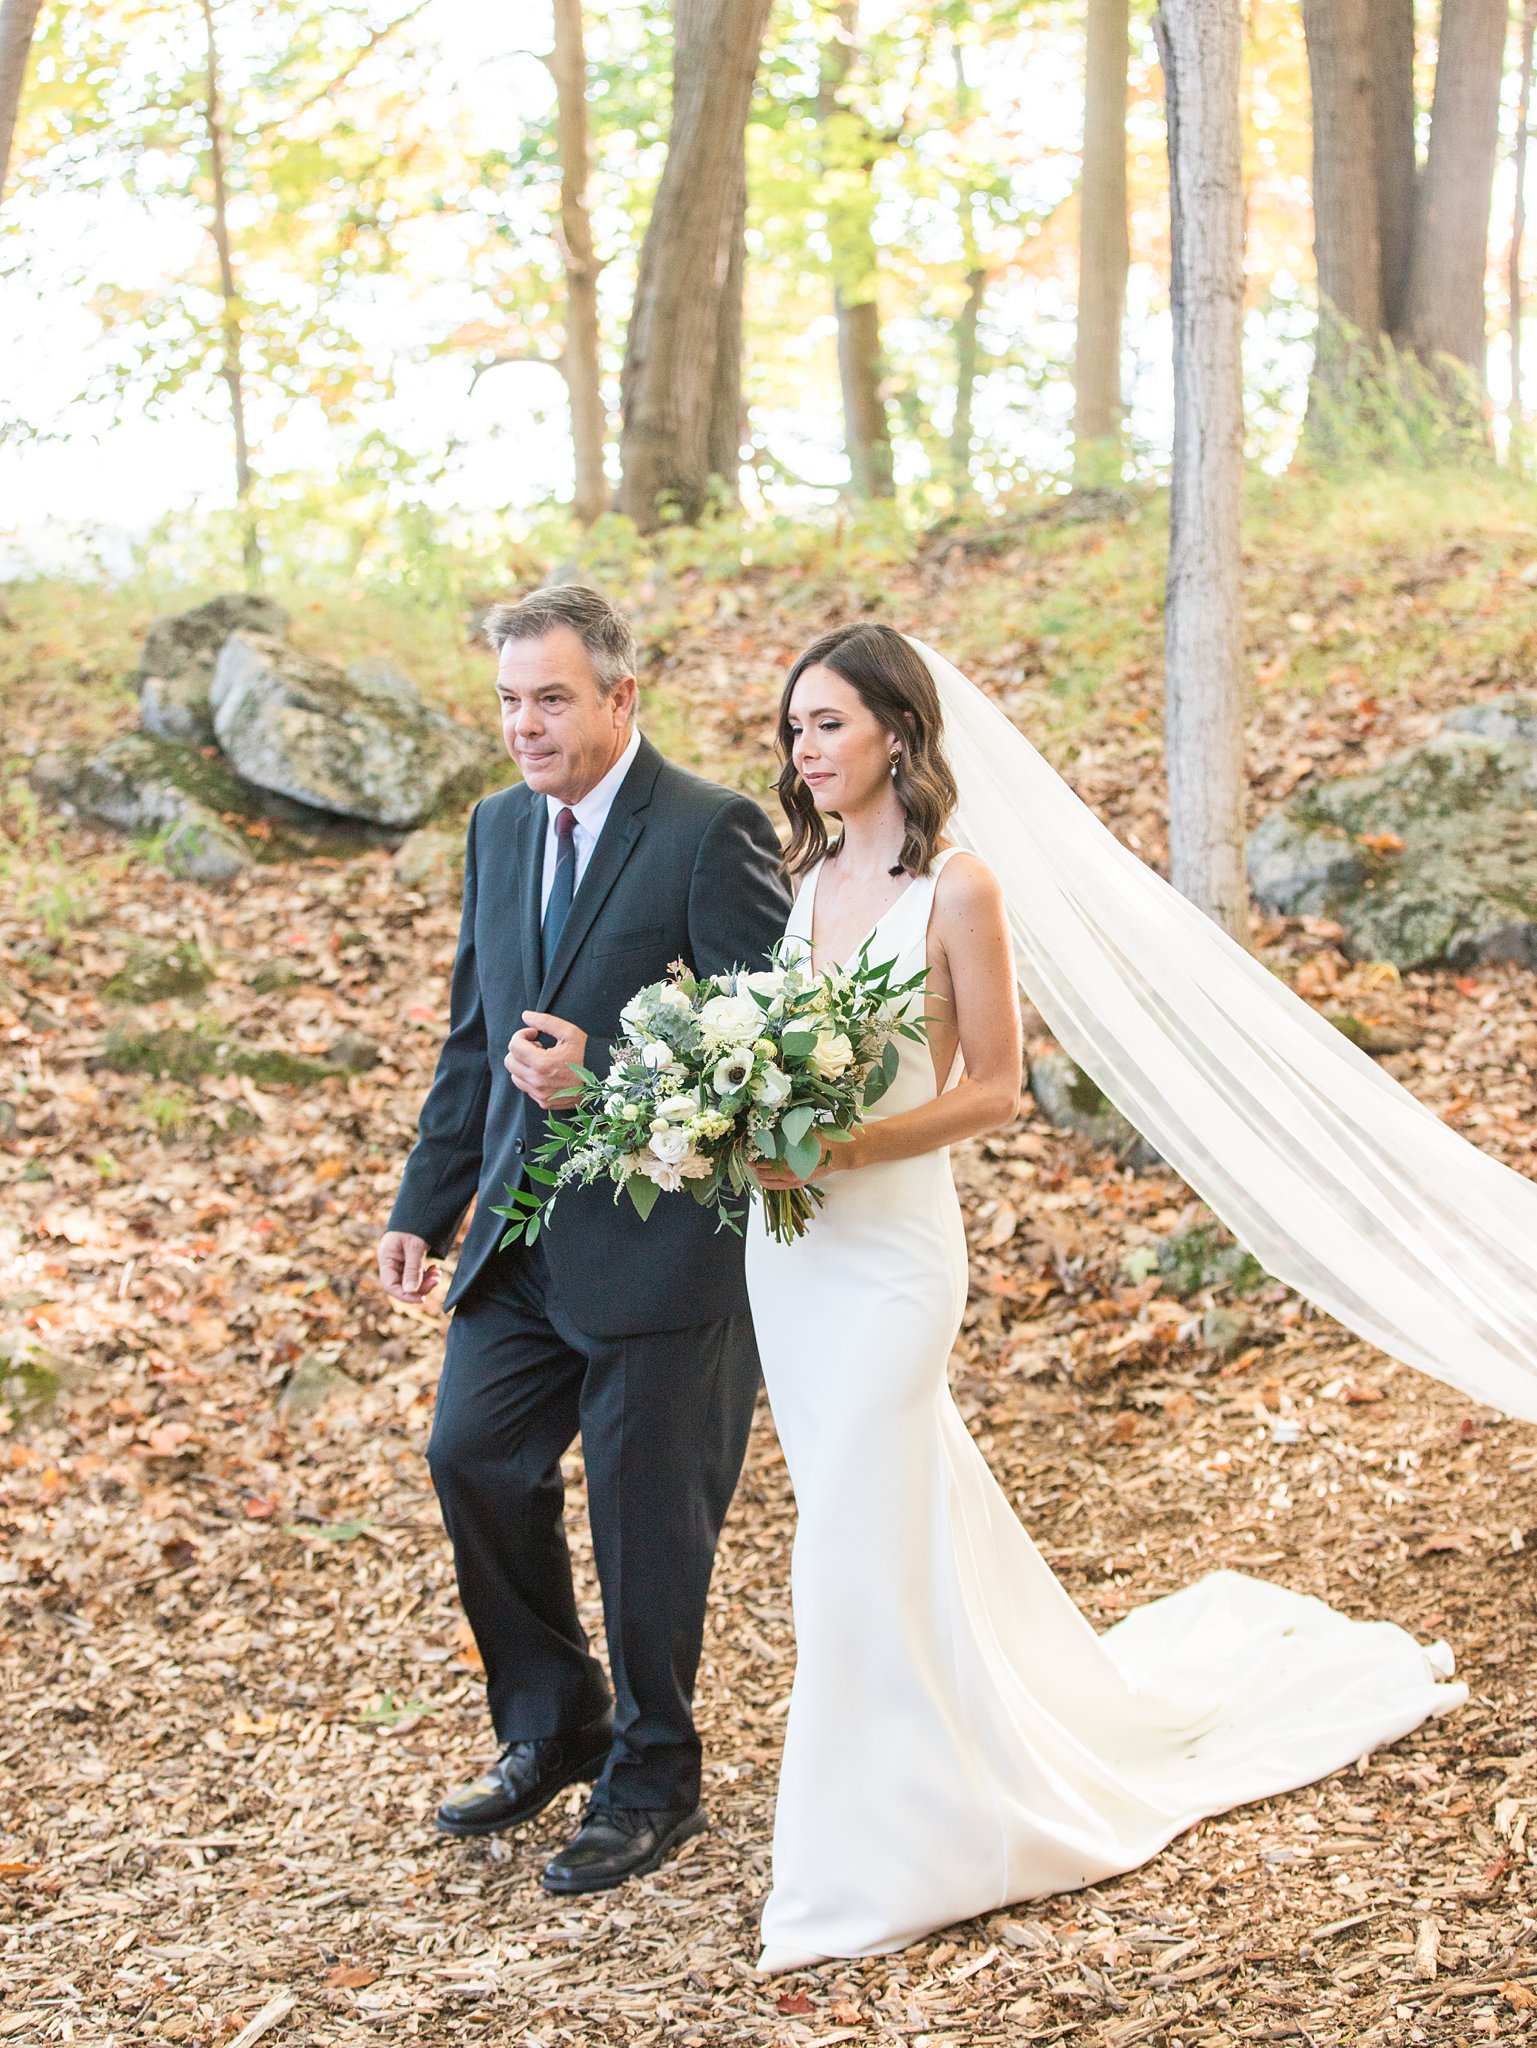 Wedding ceremony in the forest with fall colours, bride walks down the aisle, Opinicon Wedding Photos by Amy Pinder Photography